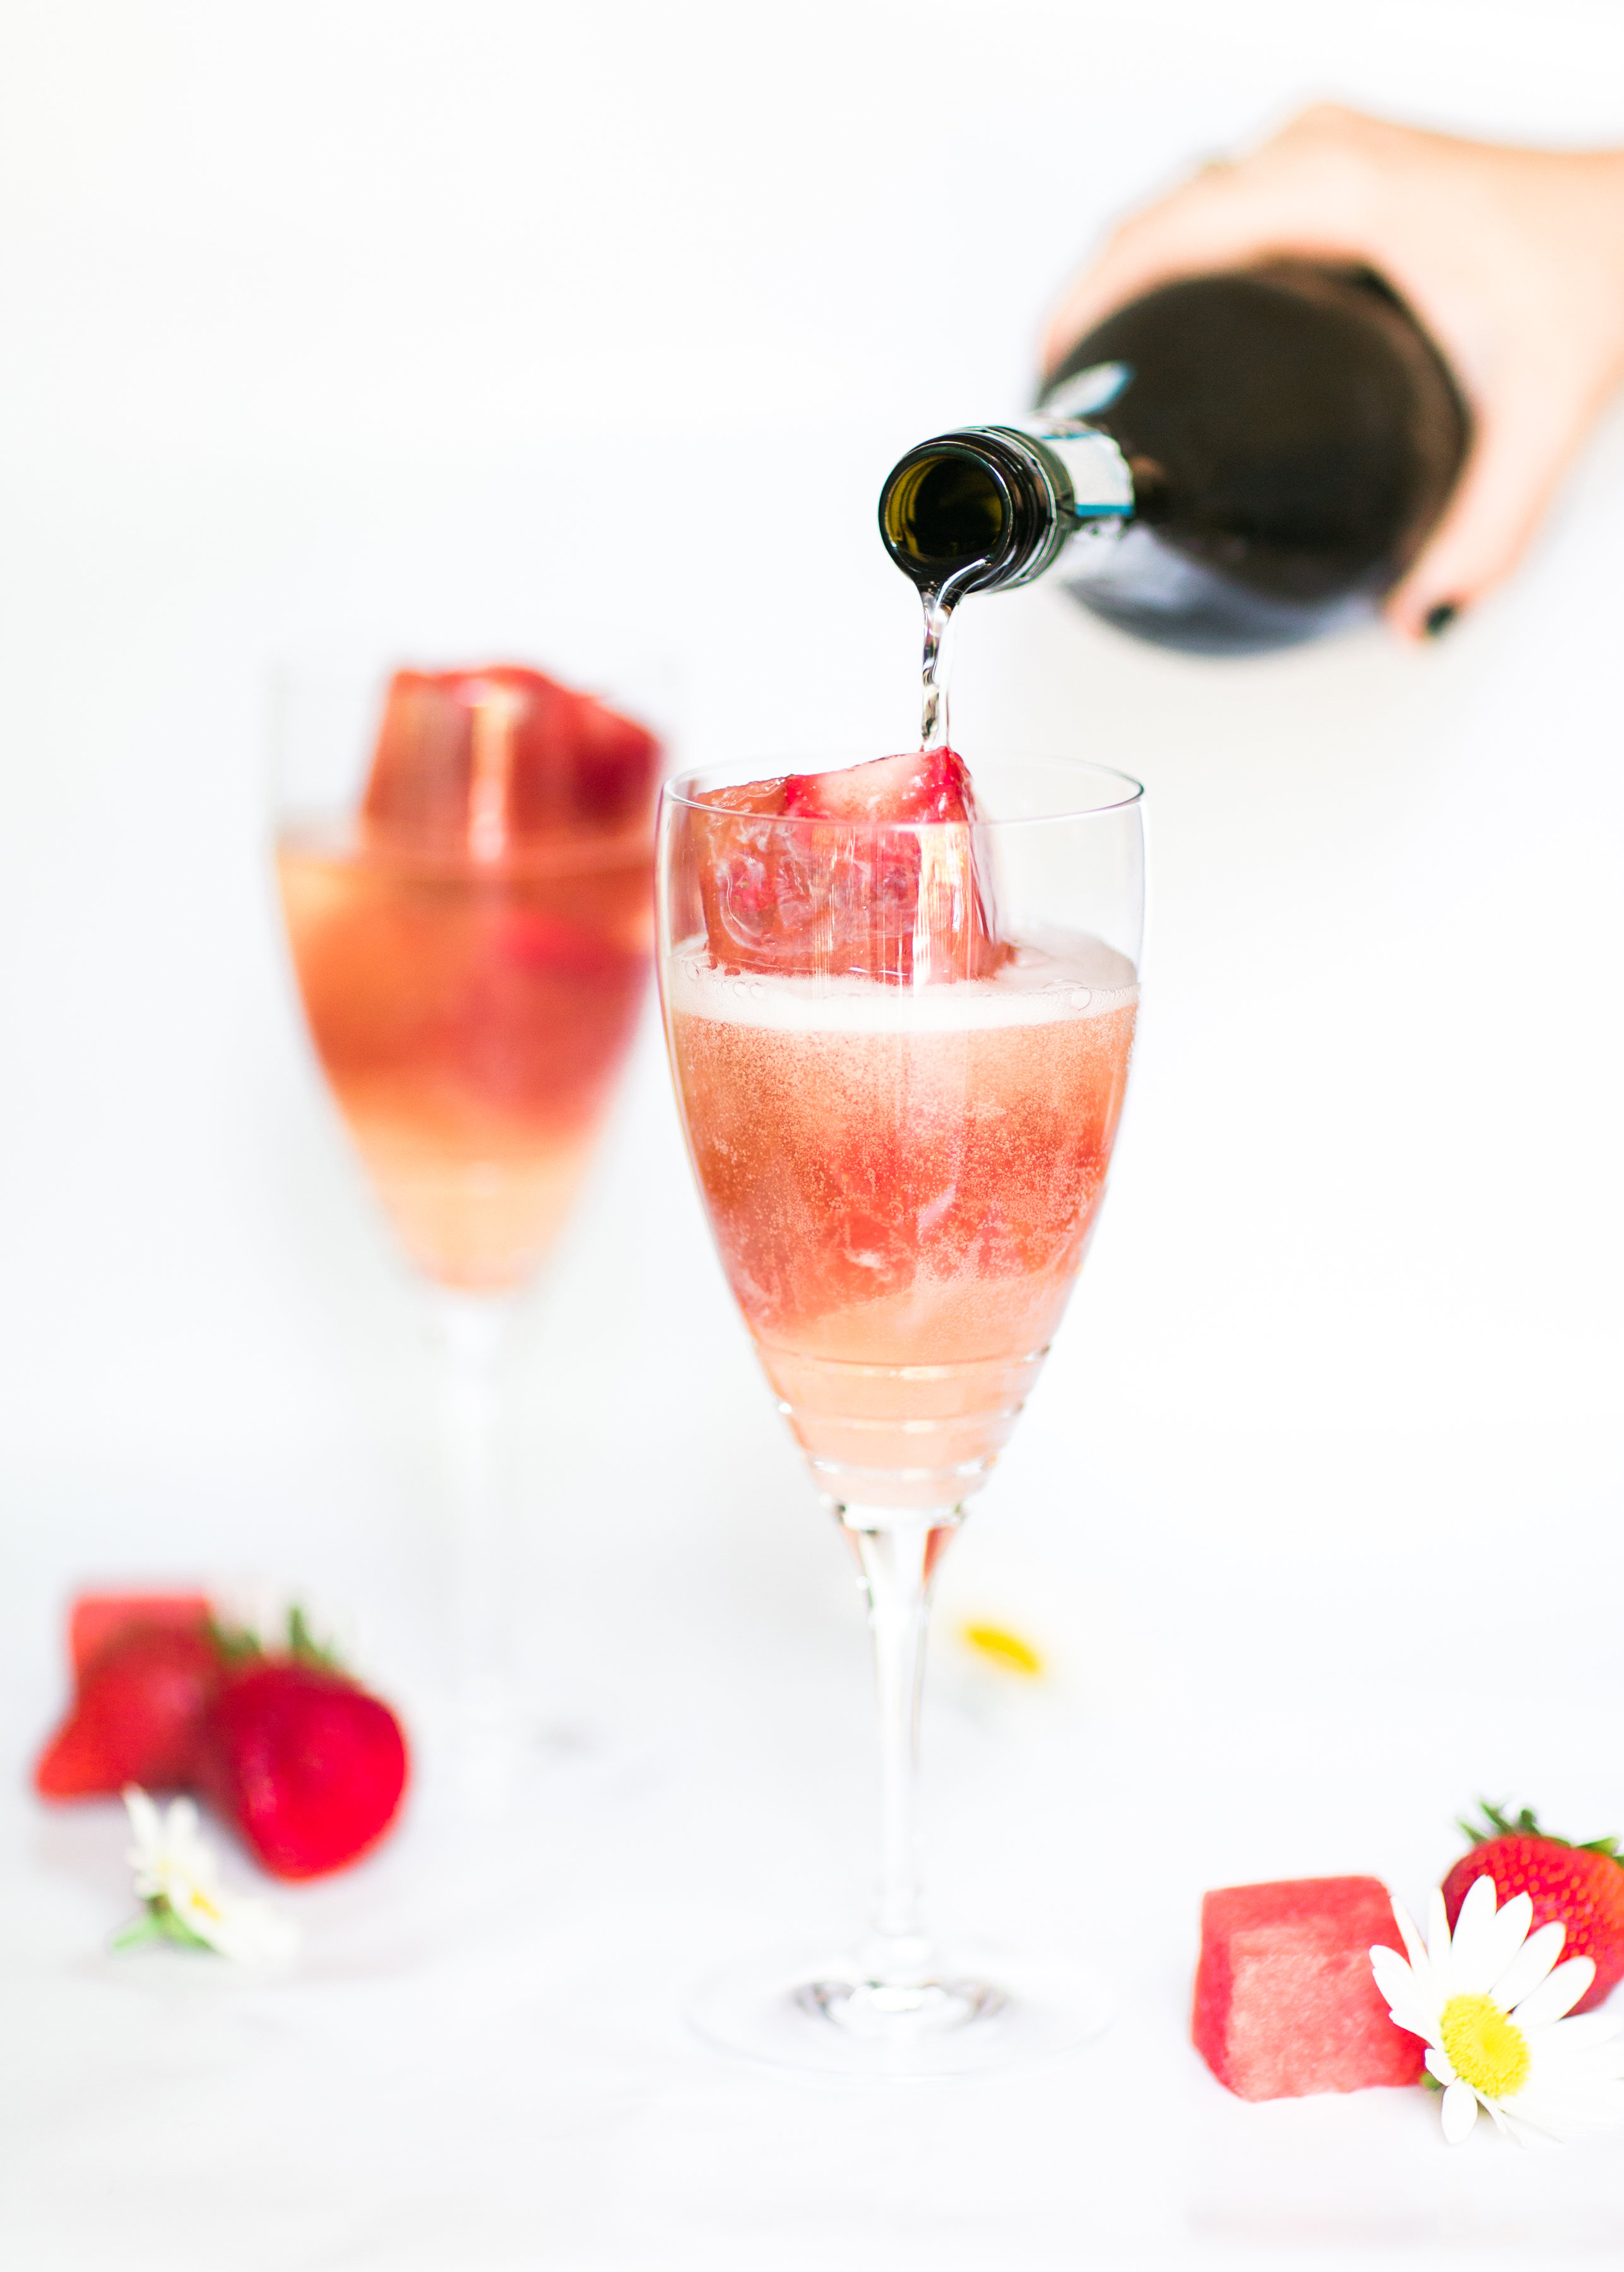 Say hello to your new favorite summer spritzer, made with prosecco and the yummiest giant strawberry watermelon ice cubes. Click through for the recipe. | glitterinc.com | @glitterinc